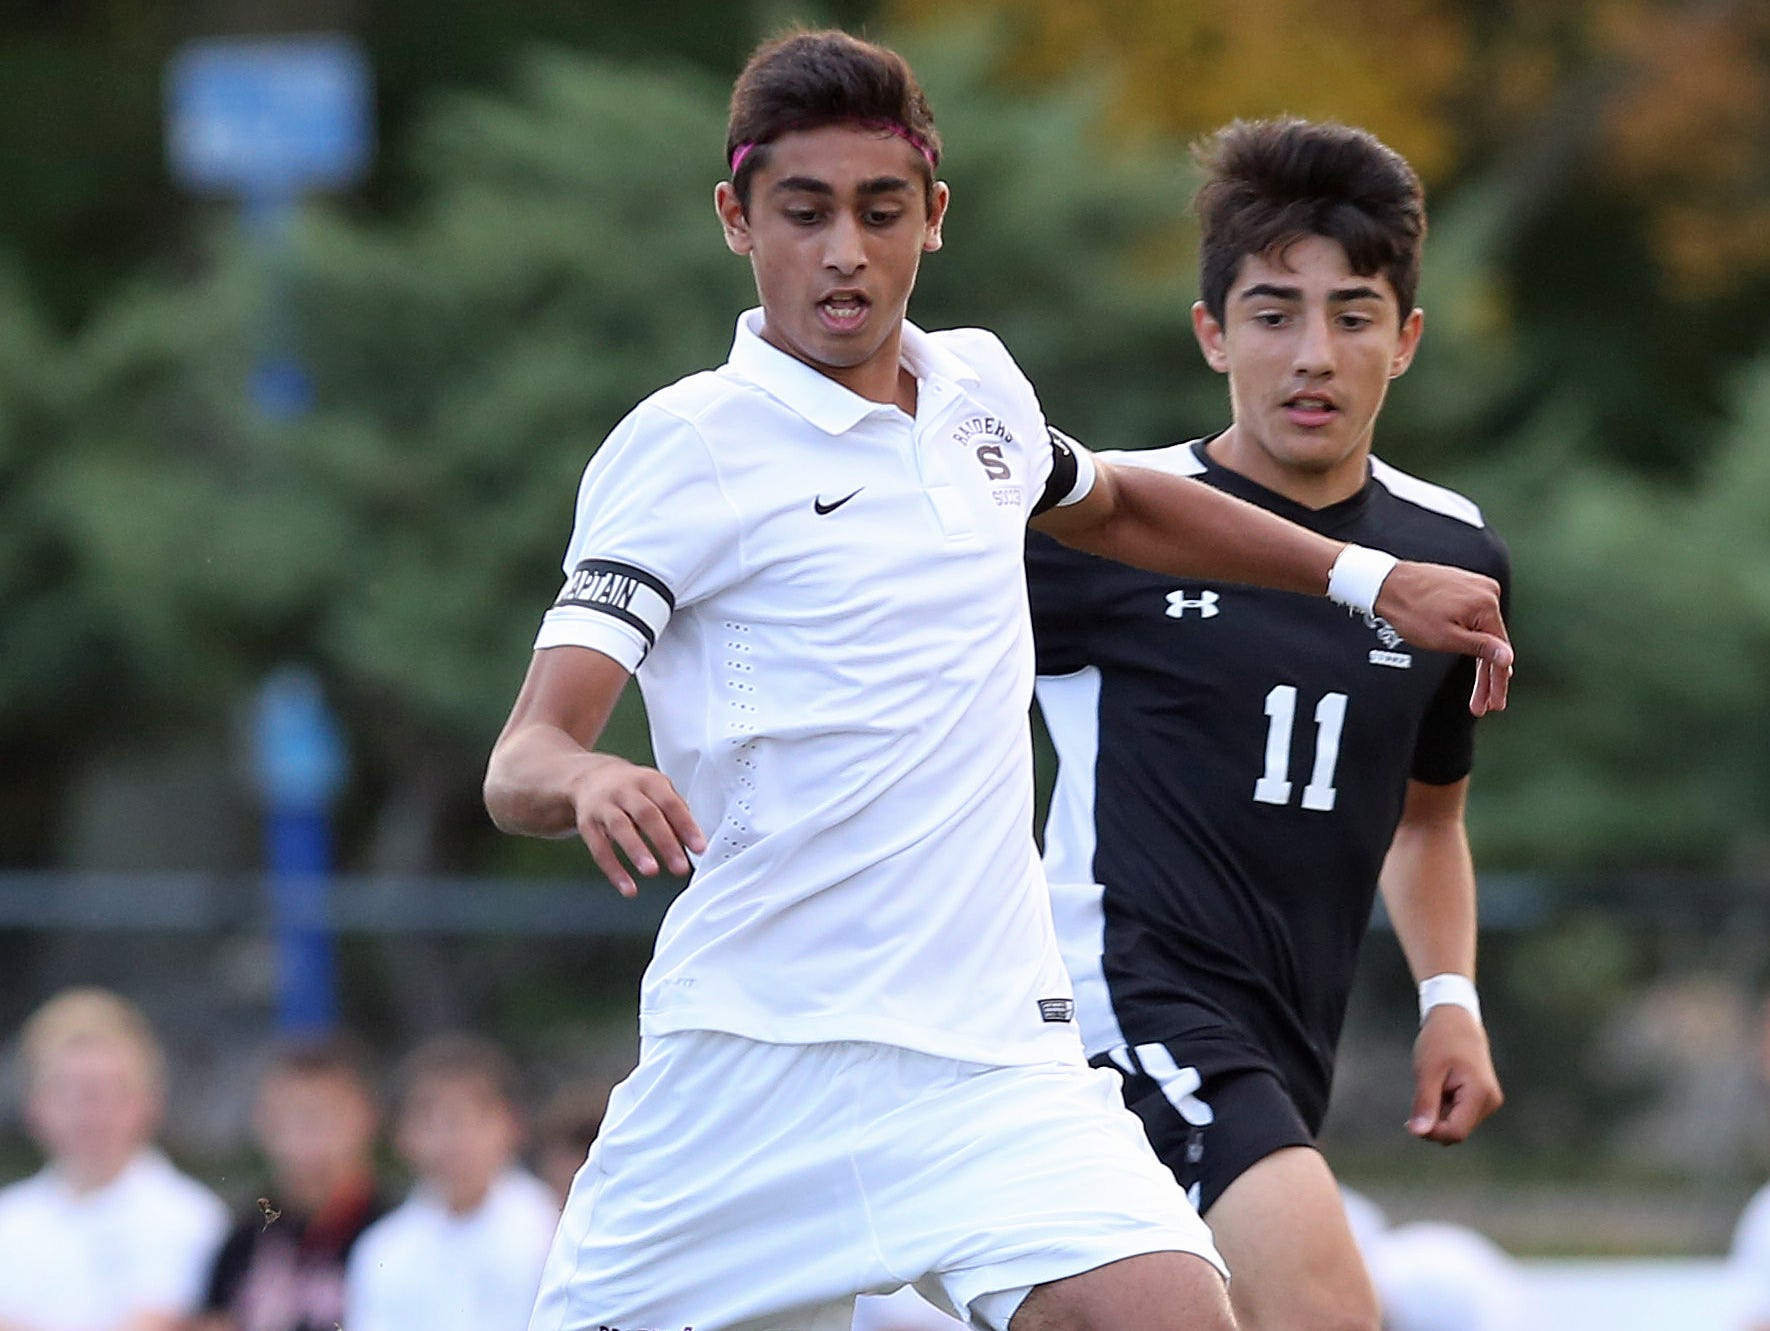 Scarsdale's Fazel Shaikh (19) fires a shot for a first half goal in front of New Rochelle's Cristian Valencia (11) during a boys soccer game at Quaker Ridge School in Scrasdale Oct. 13, 2015. Scarsdale won the game 5-2.